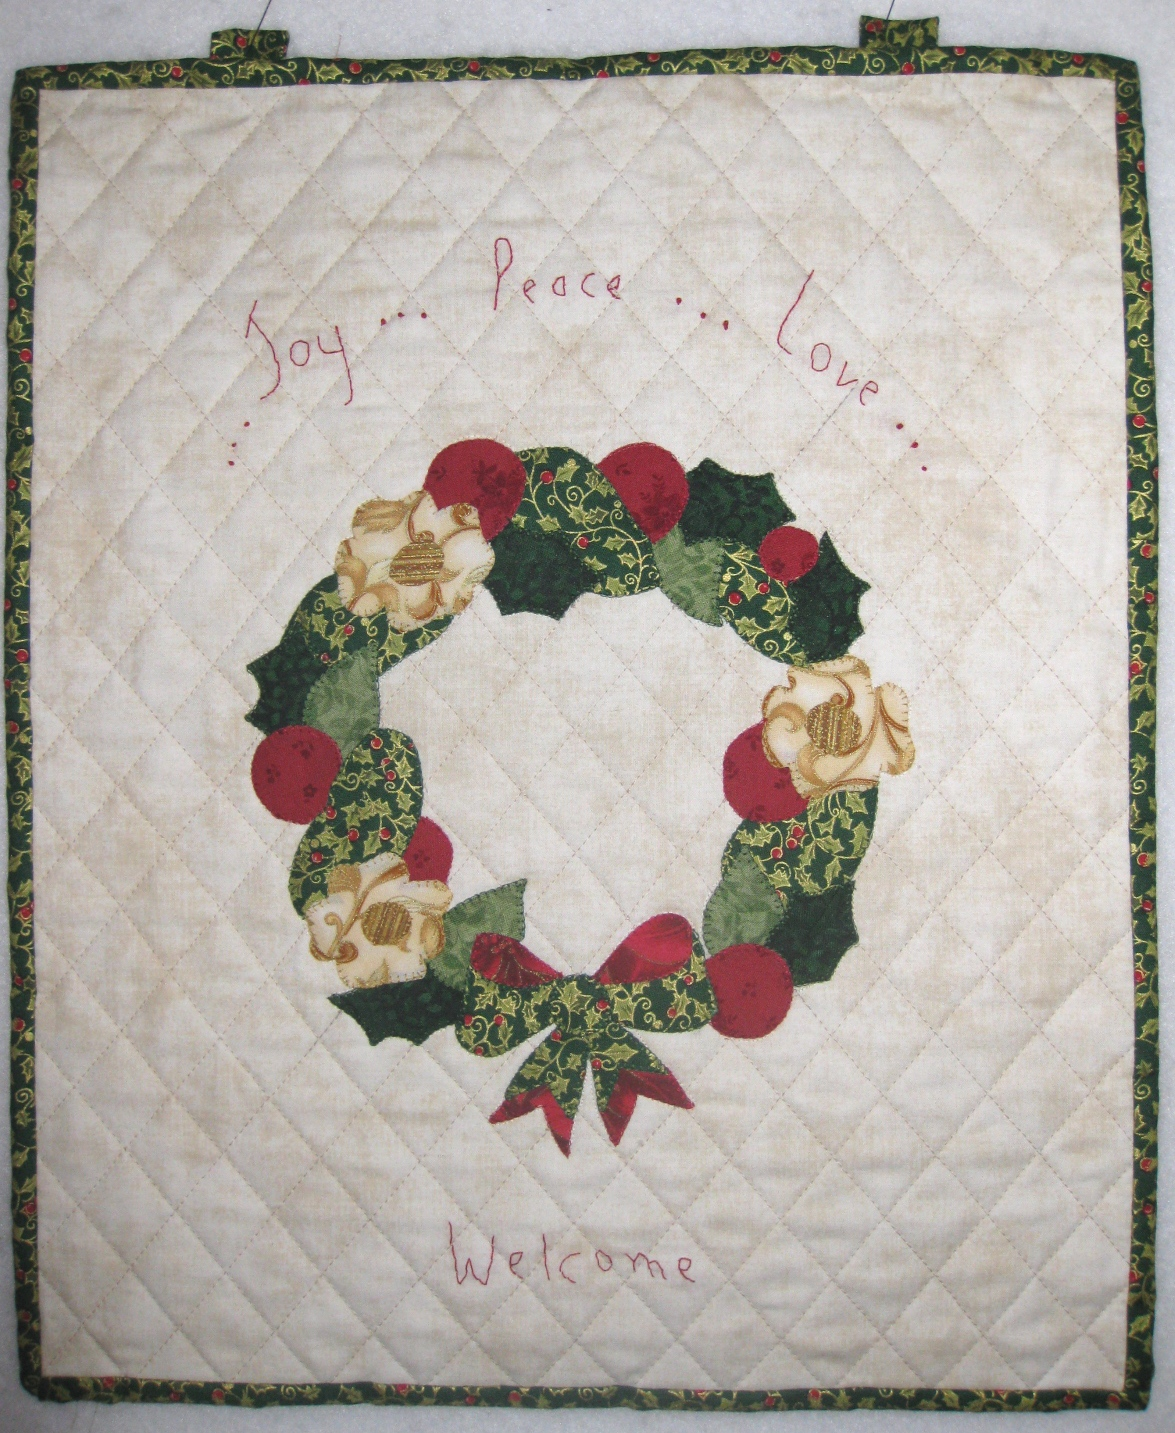 Pieced brain christmas wreath wall hanging